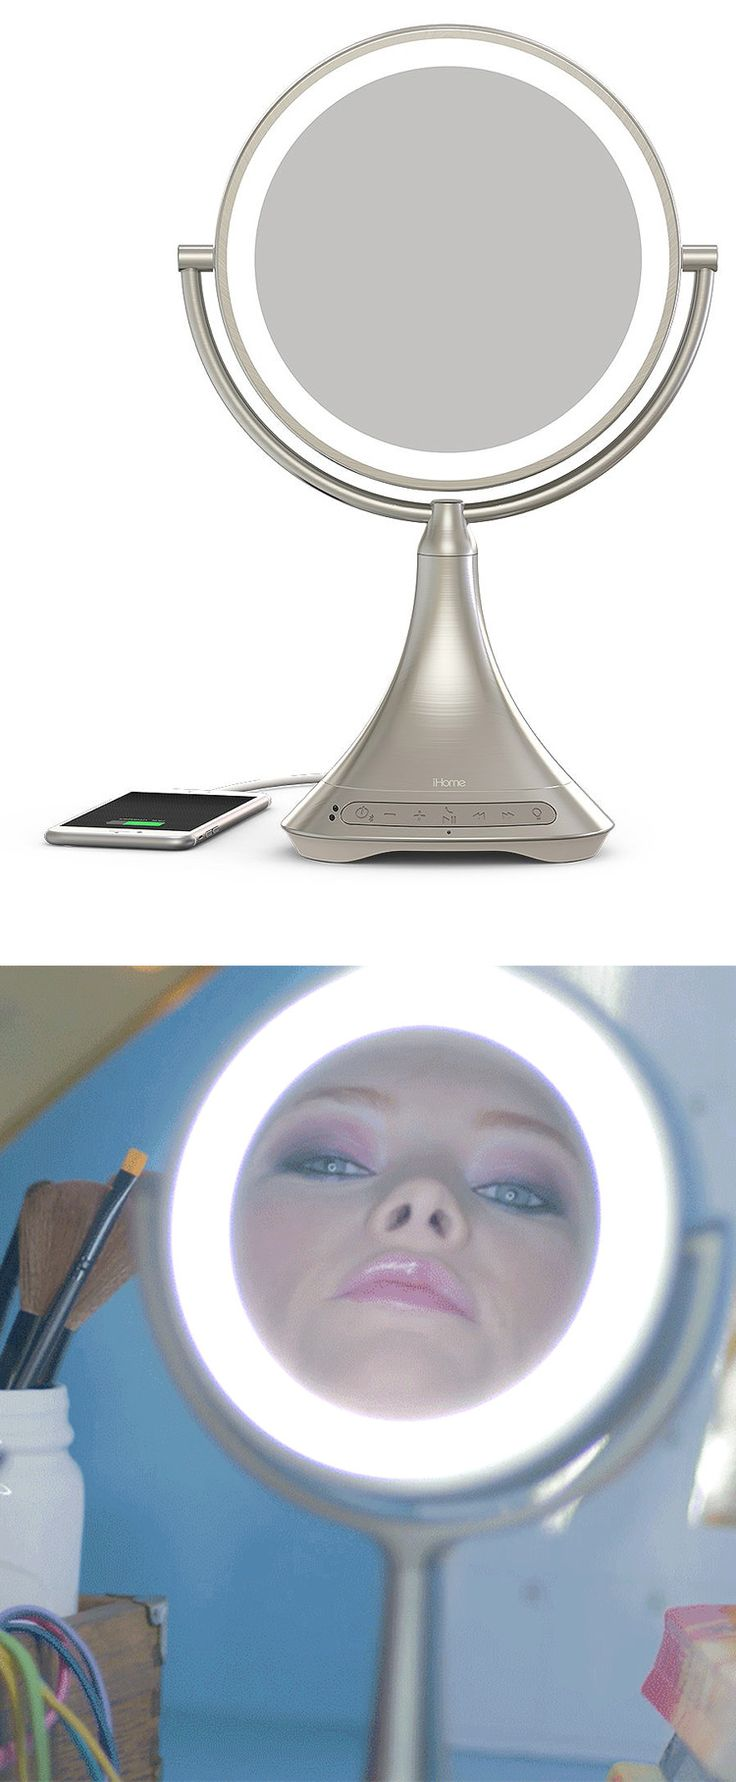 Vanity With Lights And Bluetooth : 25+ best ideas about Mirrors With Bluetooth Speakers on Pinterest Bluetooth water speakers ...